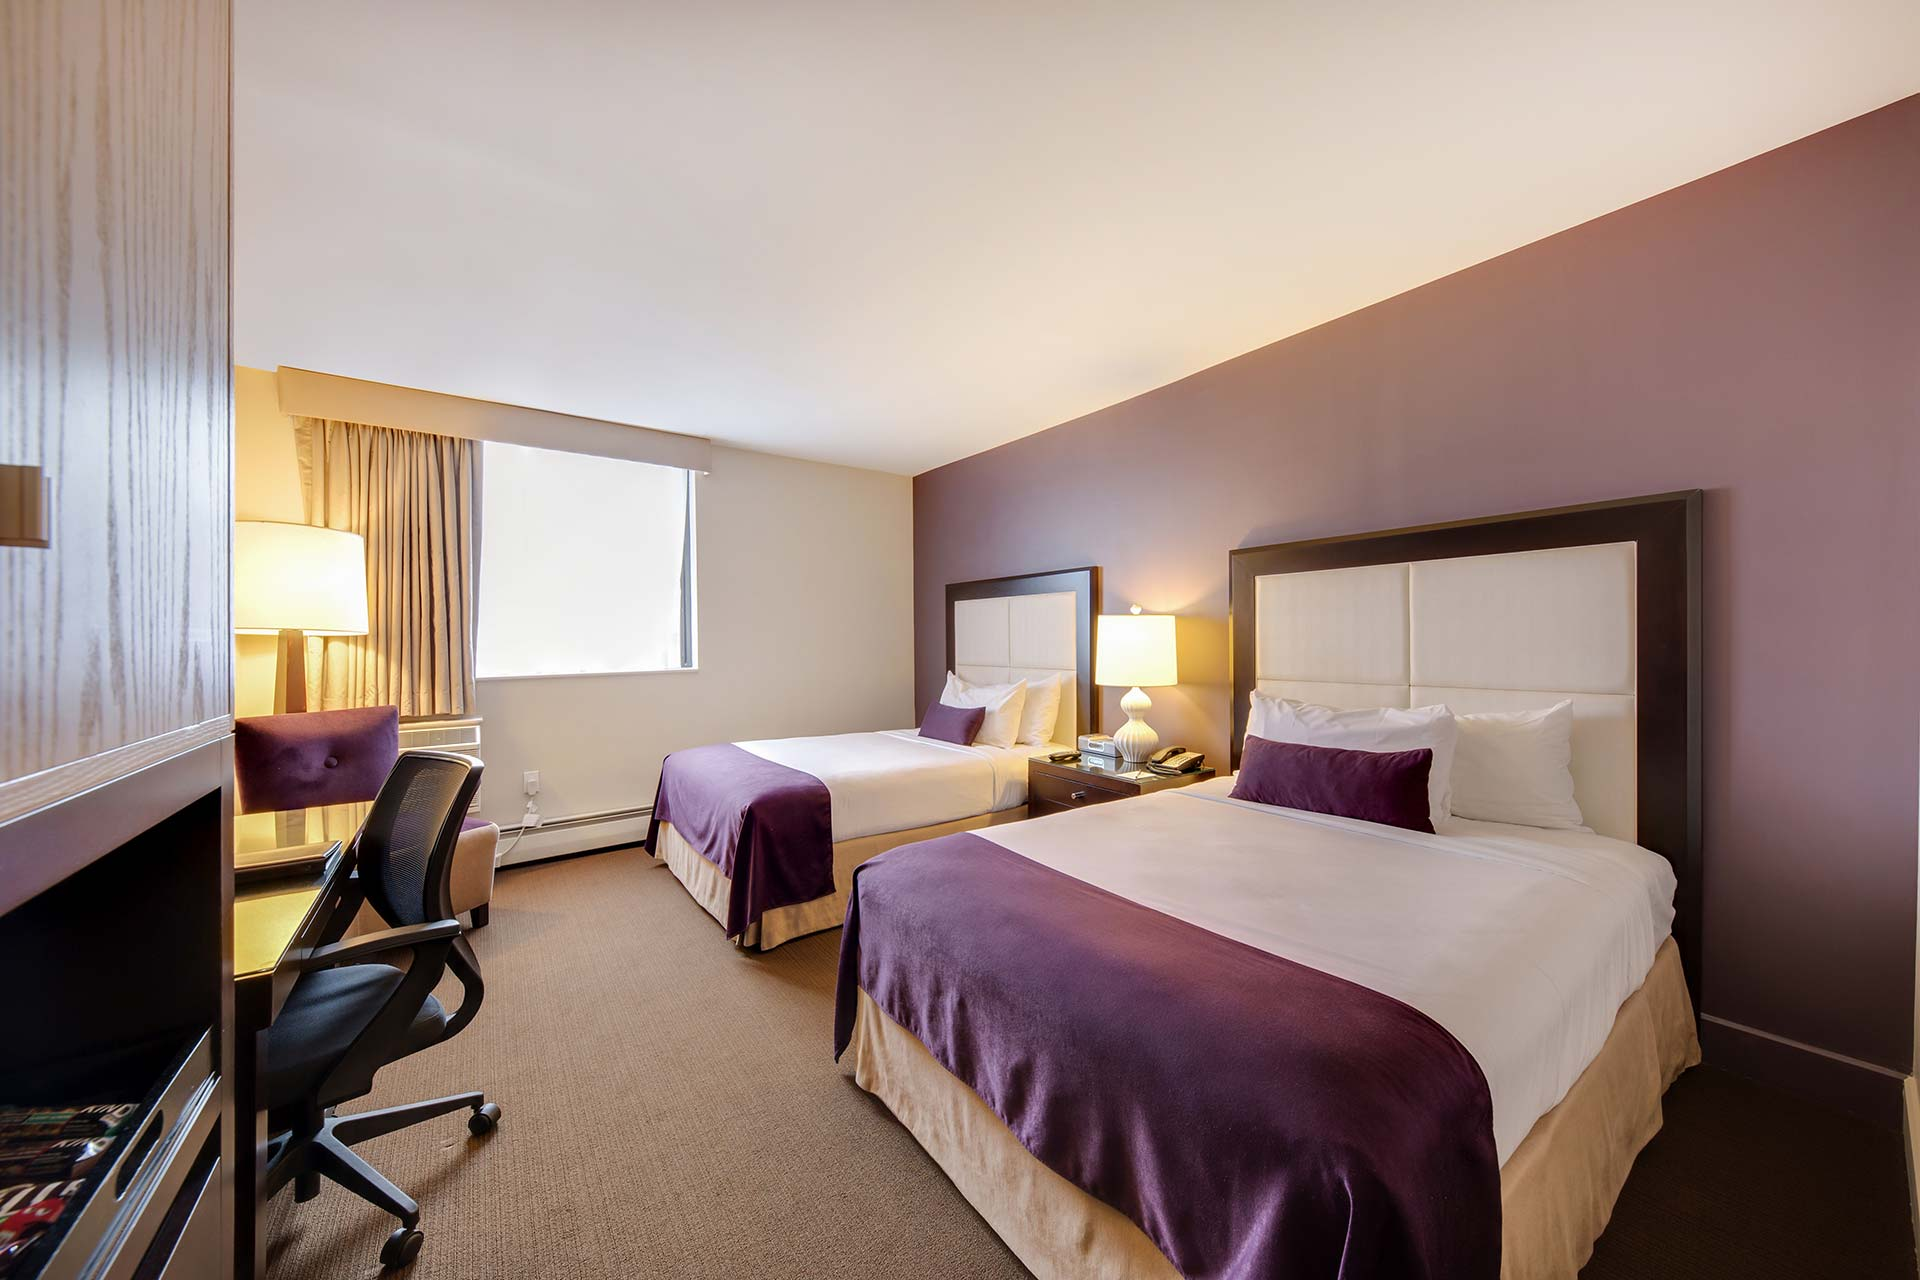 Great Neck Ny Lodging Rooms At The Andrew Hotel Room Deluxe With Two Double Beds